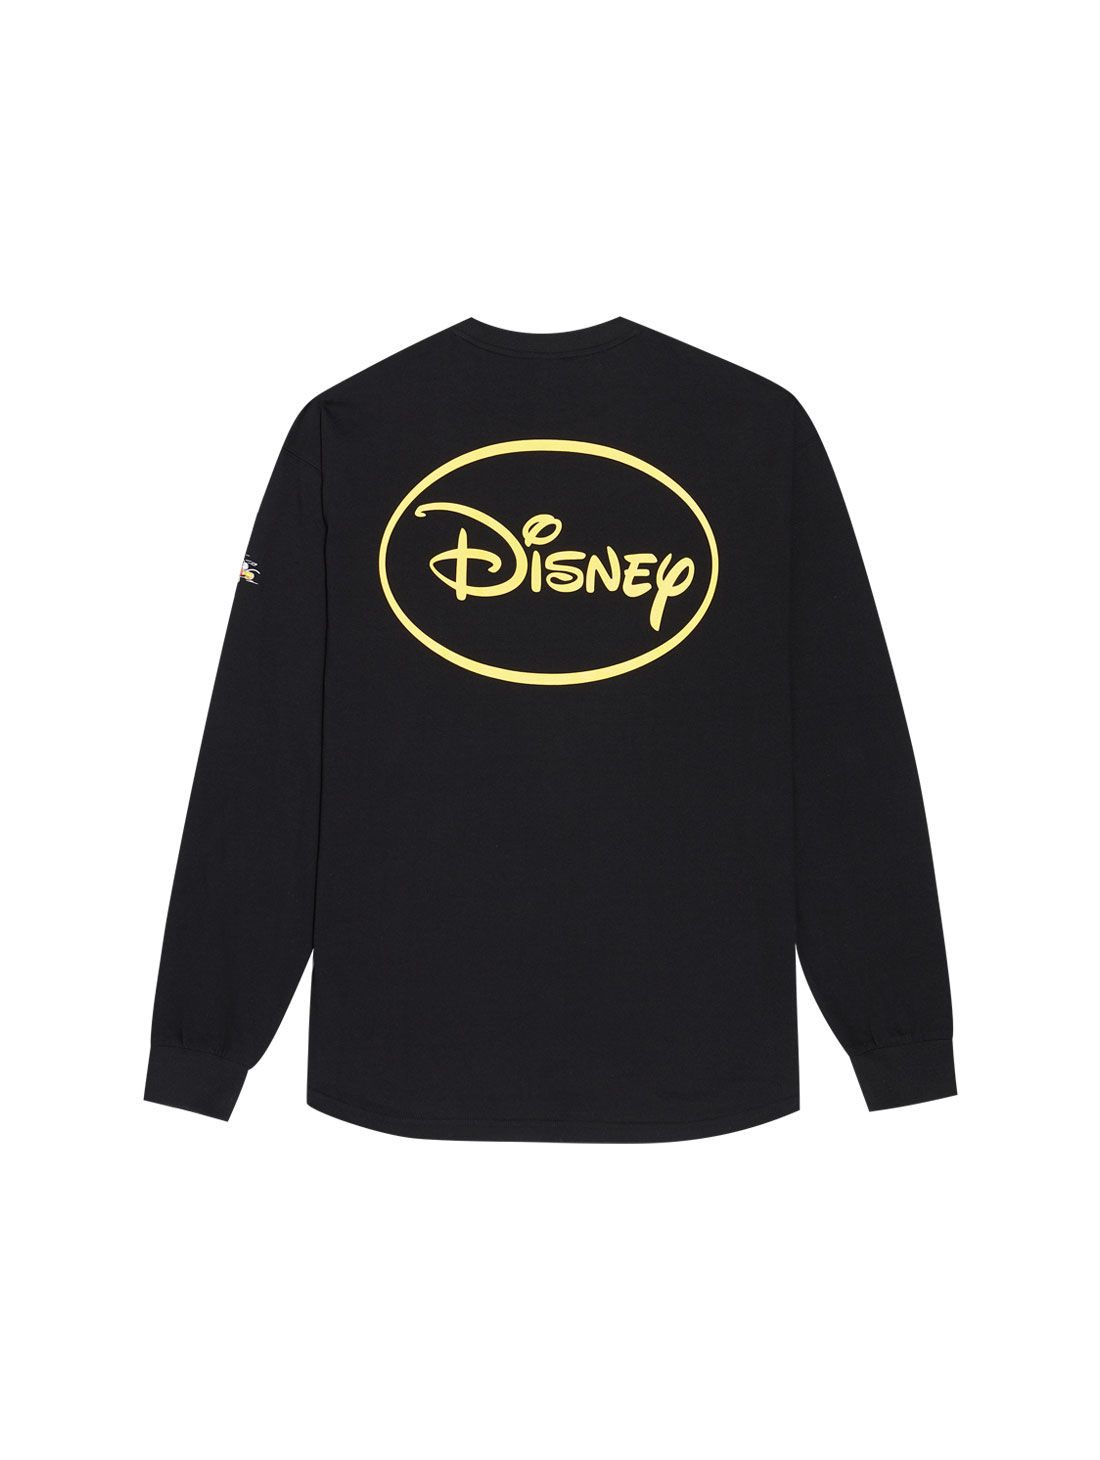 GOALxDISNEY LONG SLEEVE TEE